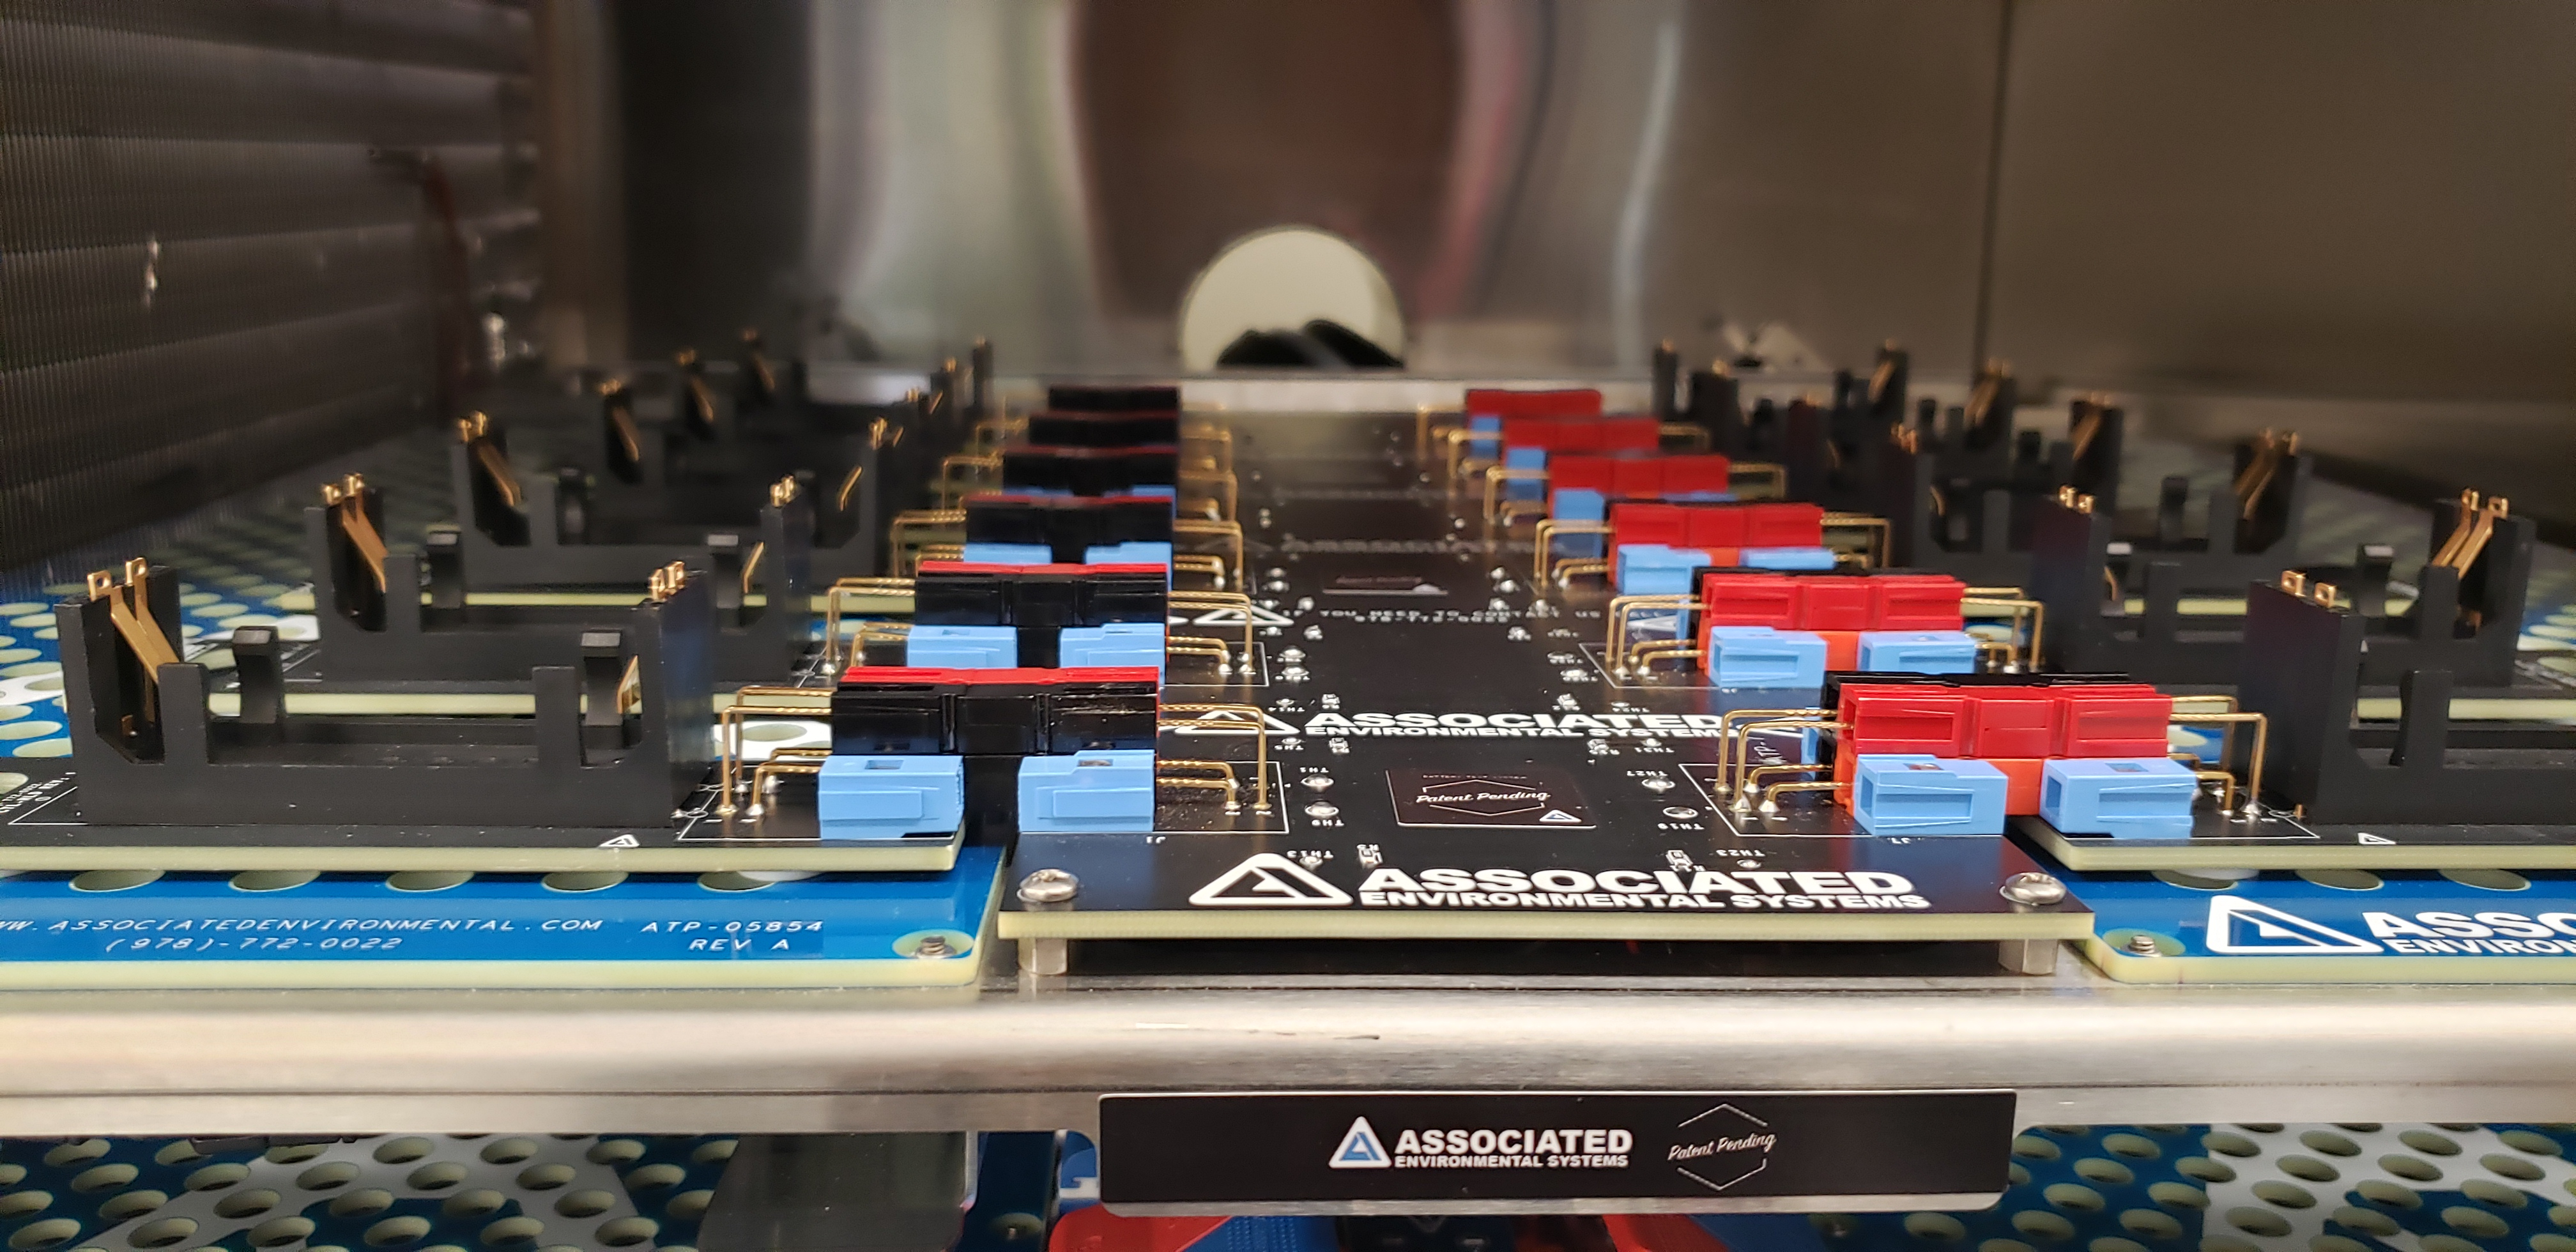 cylindrical-atp-boardlarge batch battery test fixture increases battery testing efficiency.